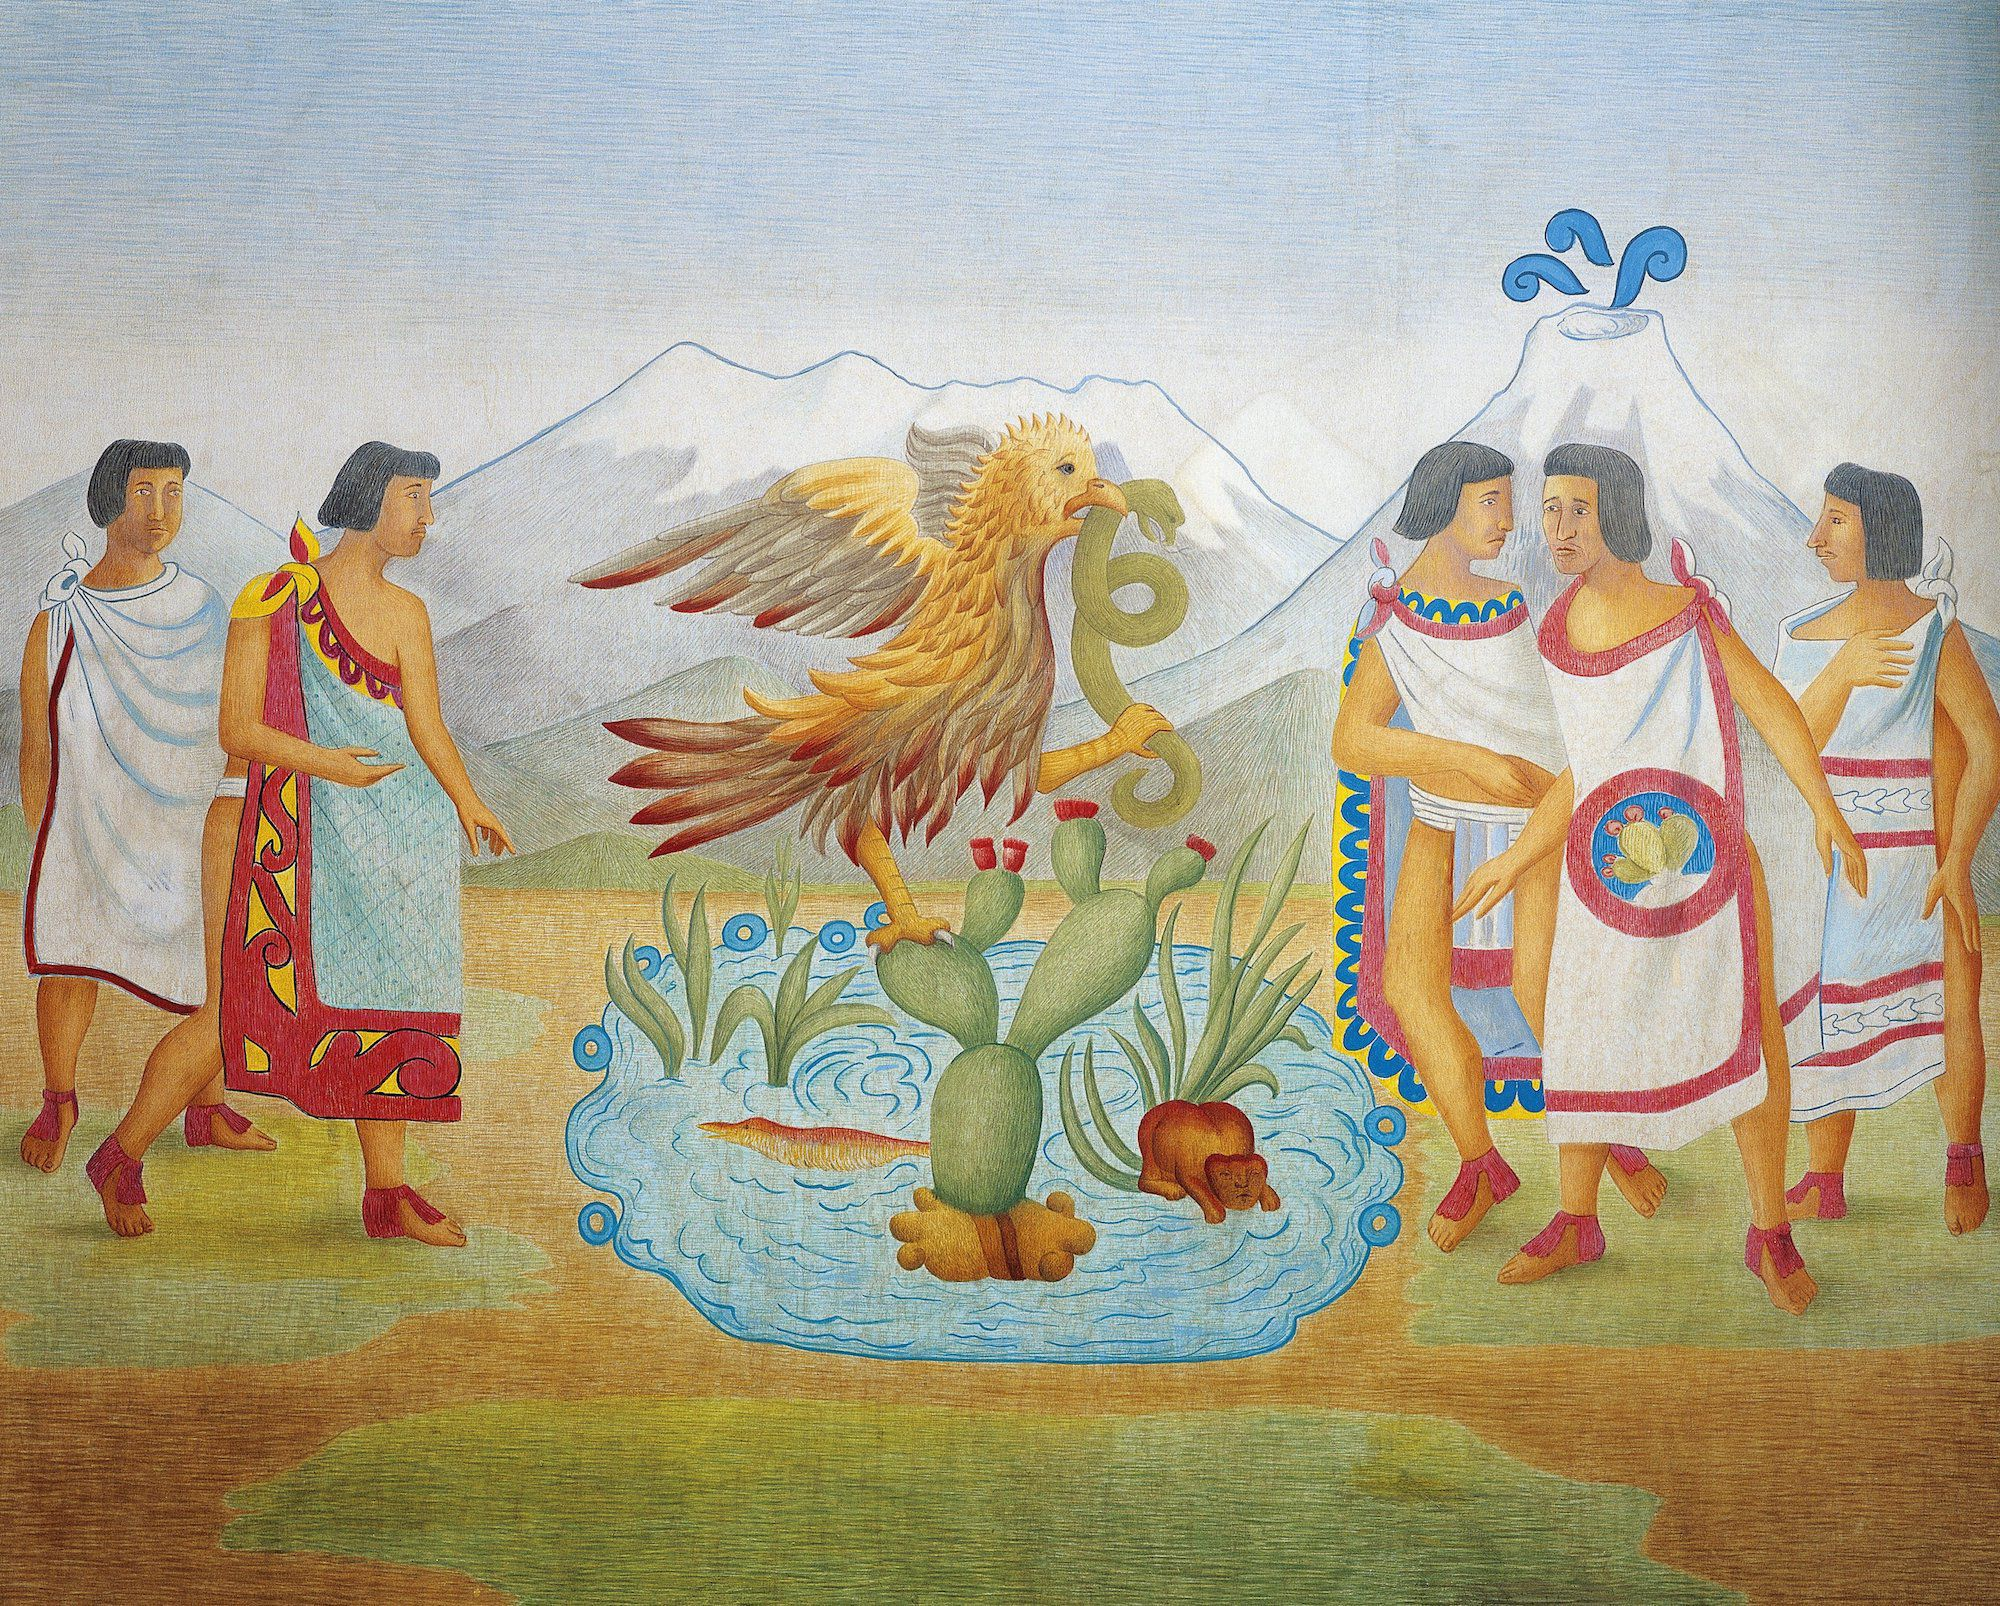 Tenochtitlan National Geographic Society